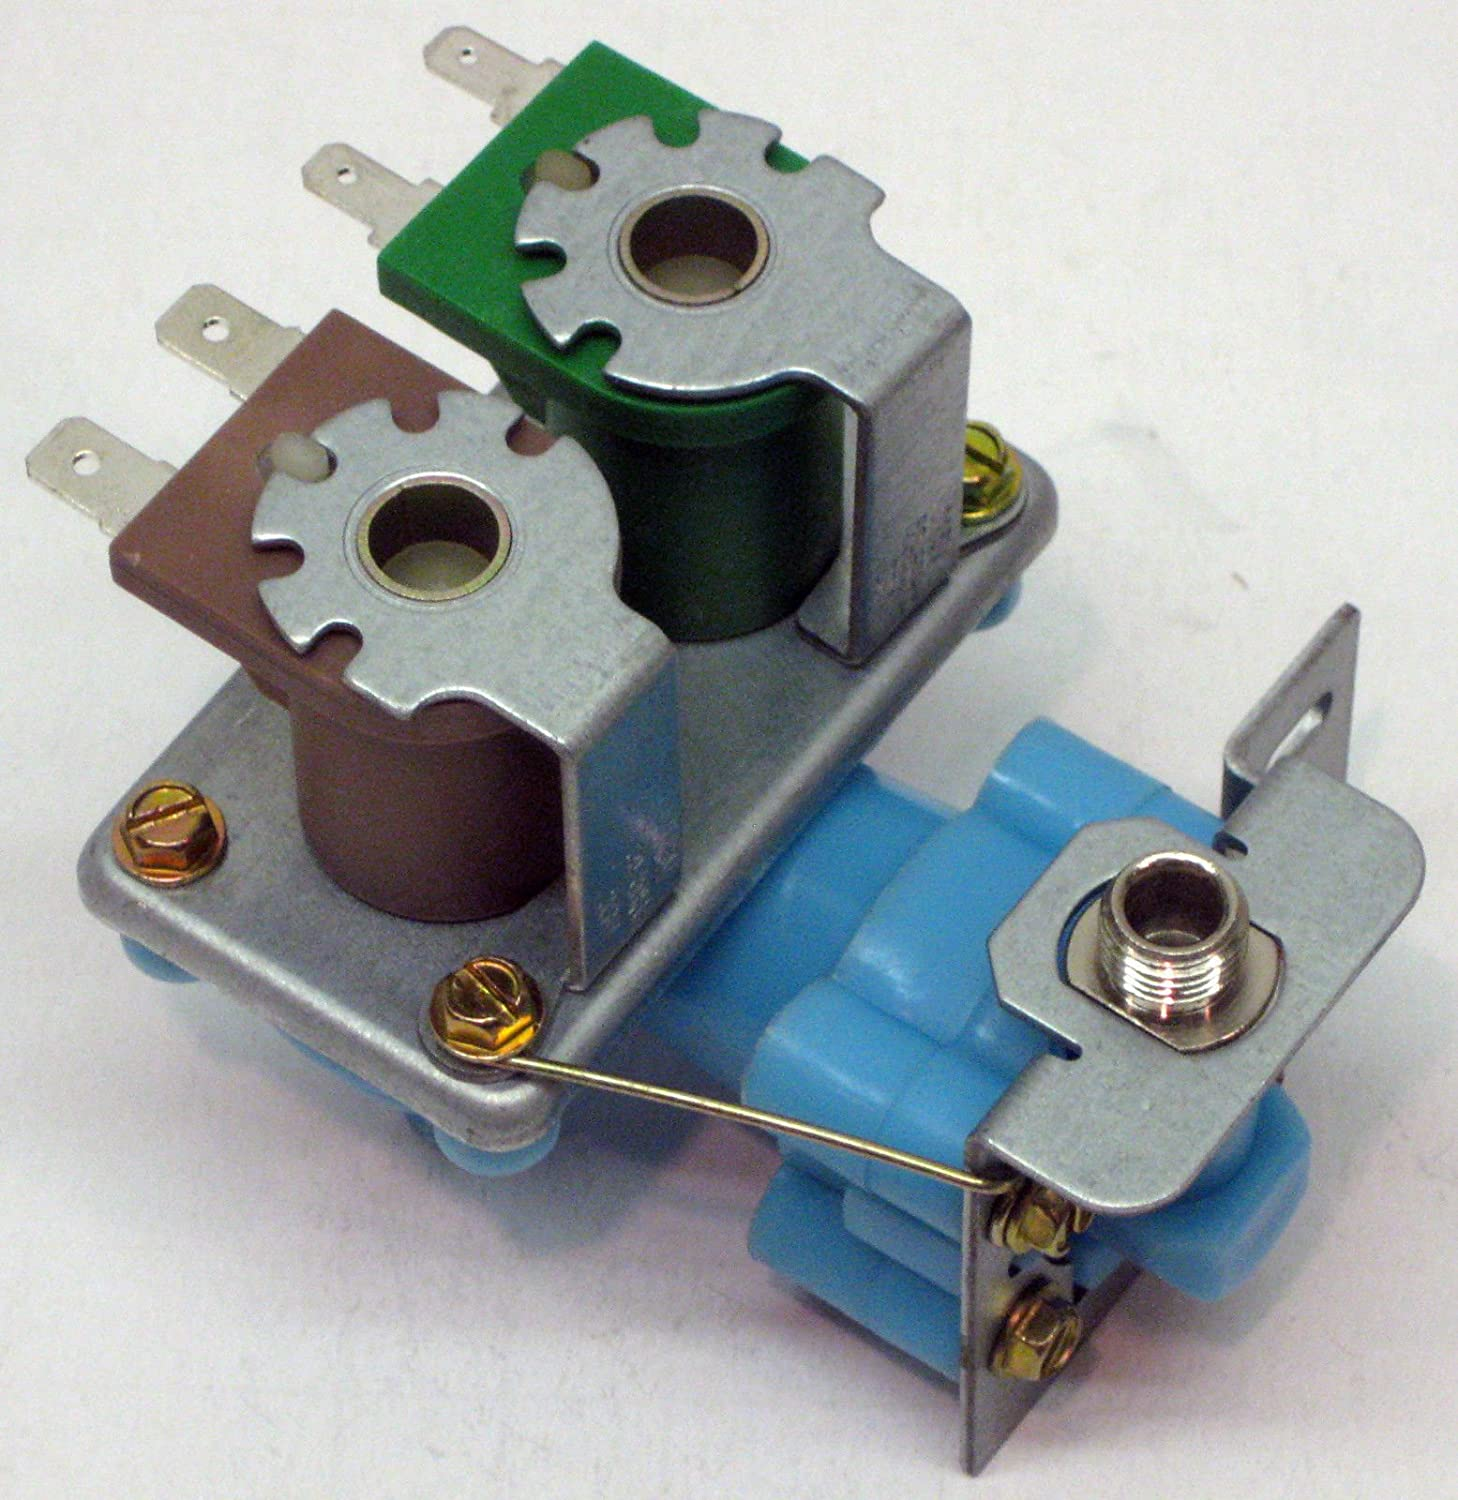 KAS Double Coil Icemaker Water Fill Valve for Whirlpool Kenmore Refrigerator Icemaker 4318046 WV8046 2188542